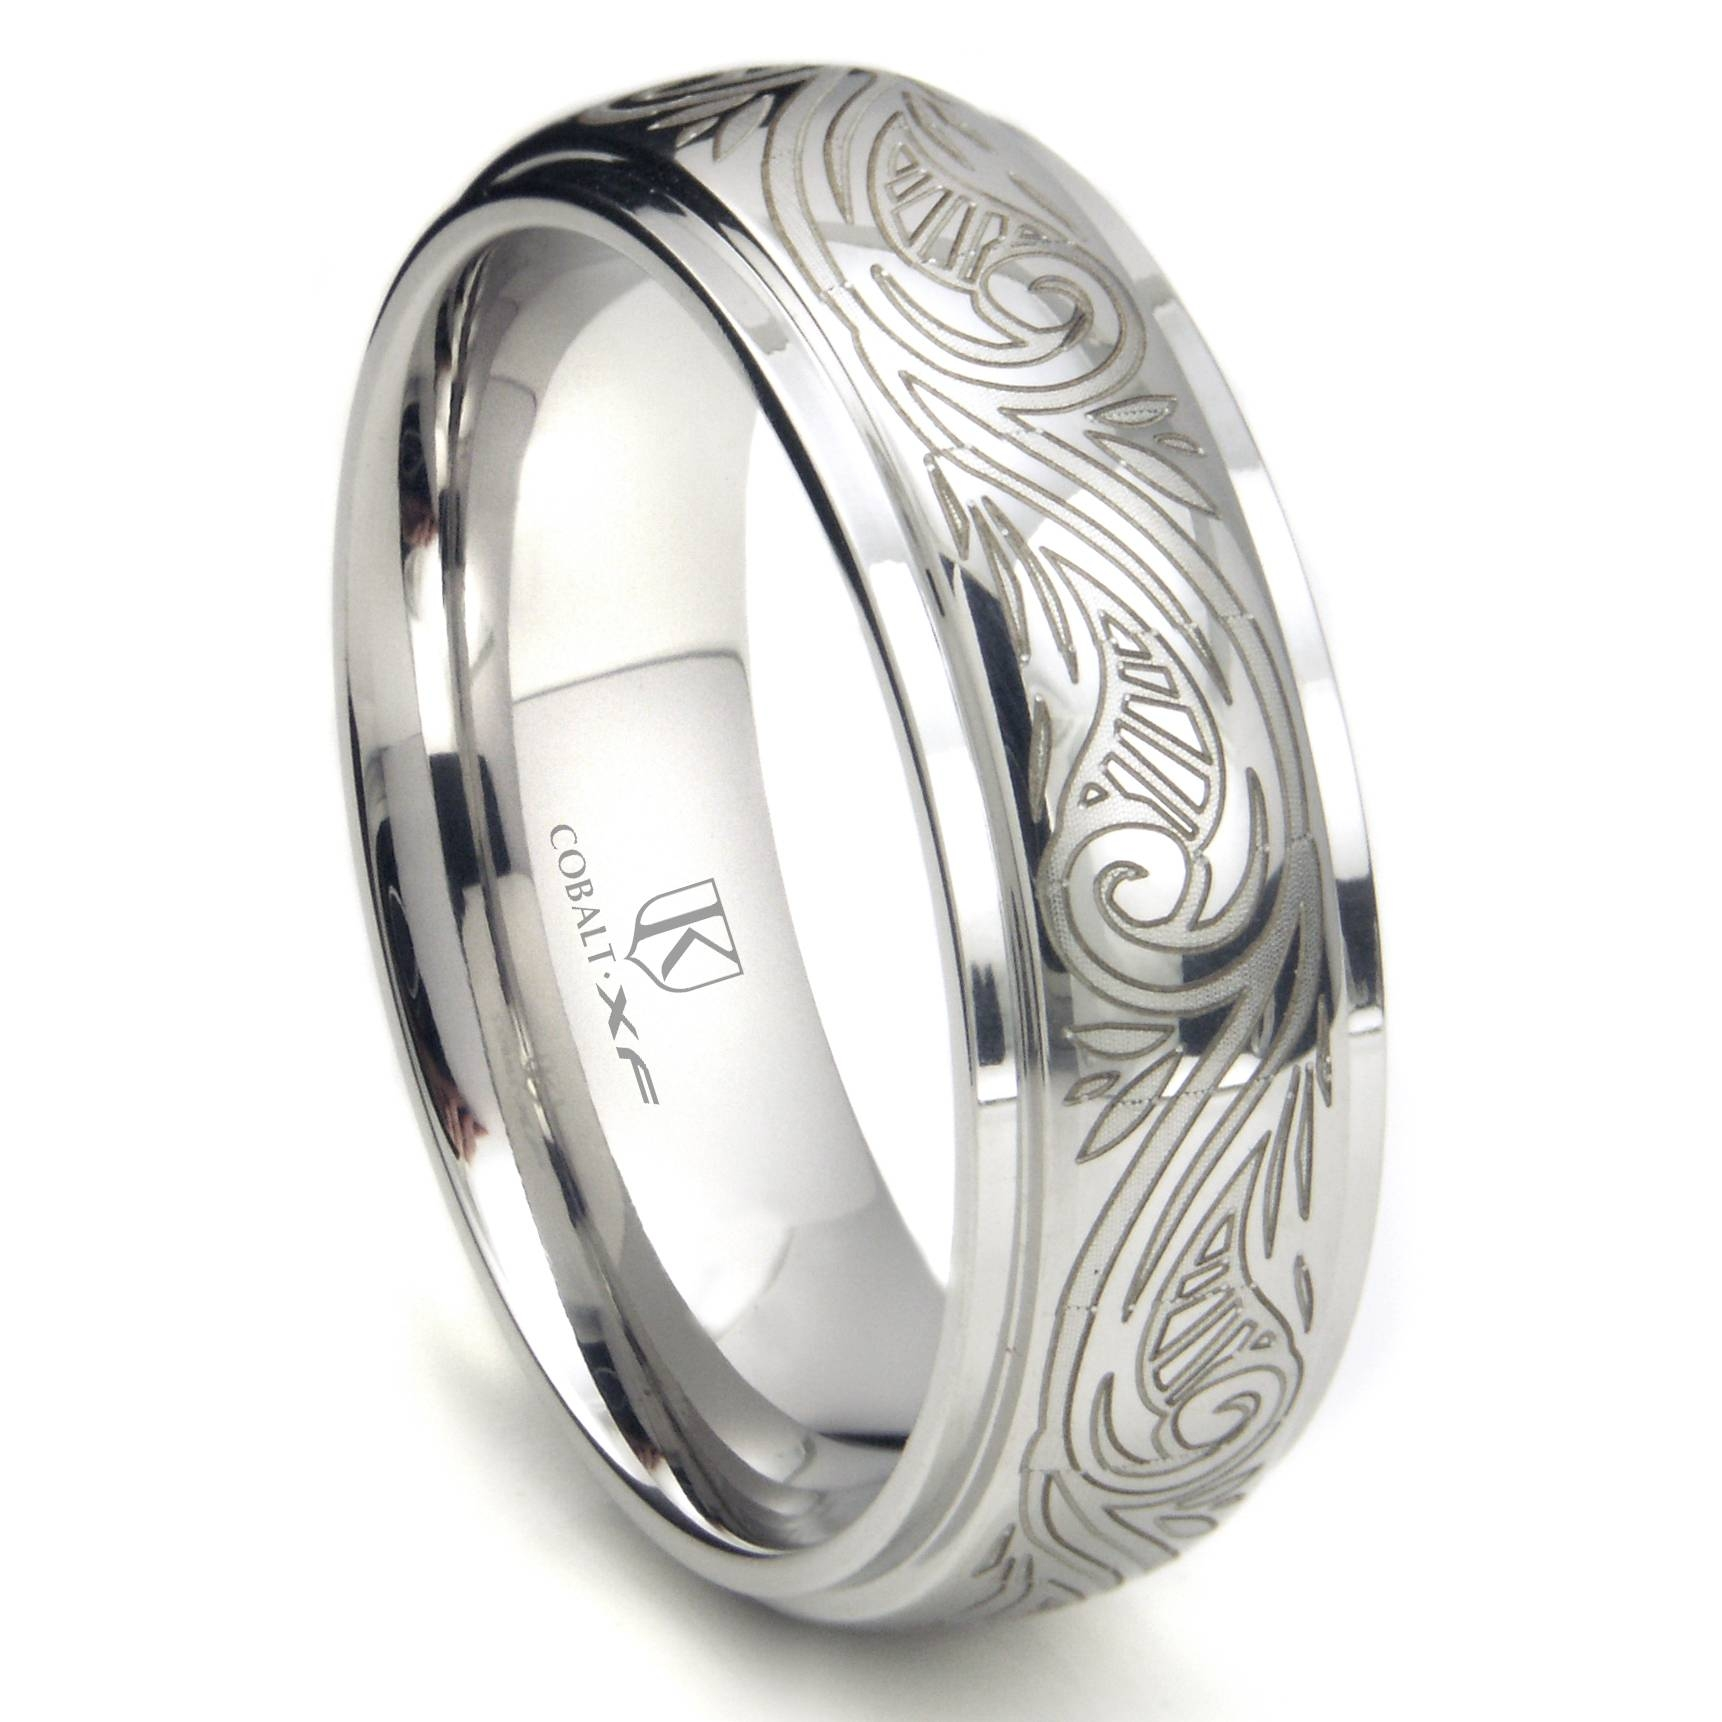 Cobalt Xf Chrome 8Mm Laser Engraved Paisley Motif Dome Wedding Throughout Engraving Mens Wedding Bands (View 3 of 15)